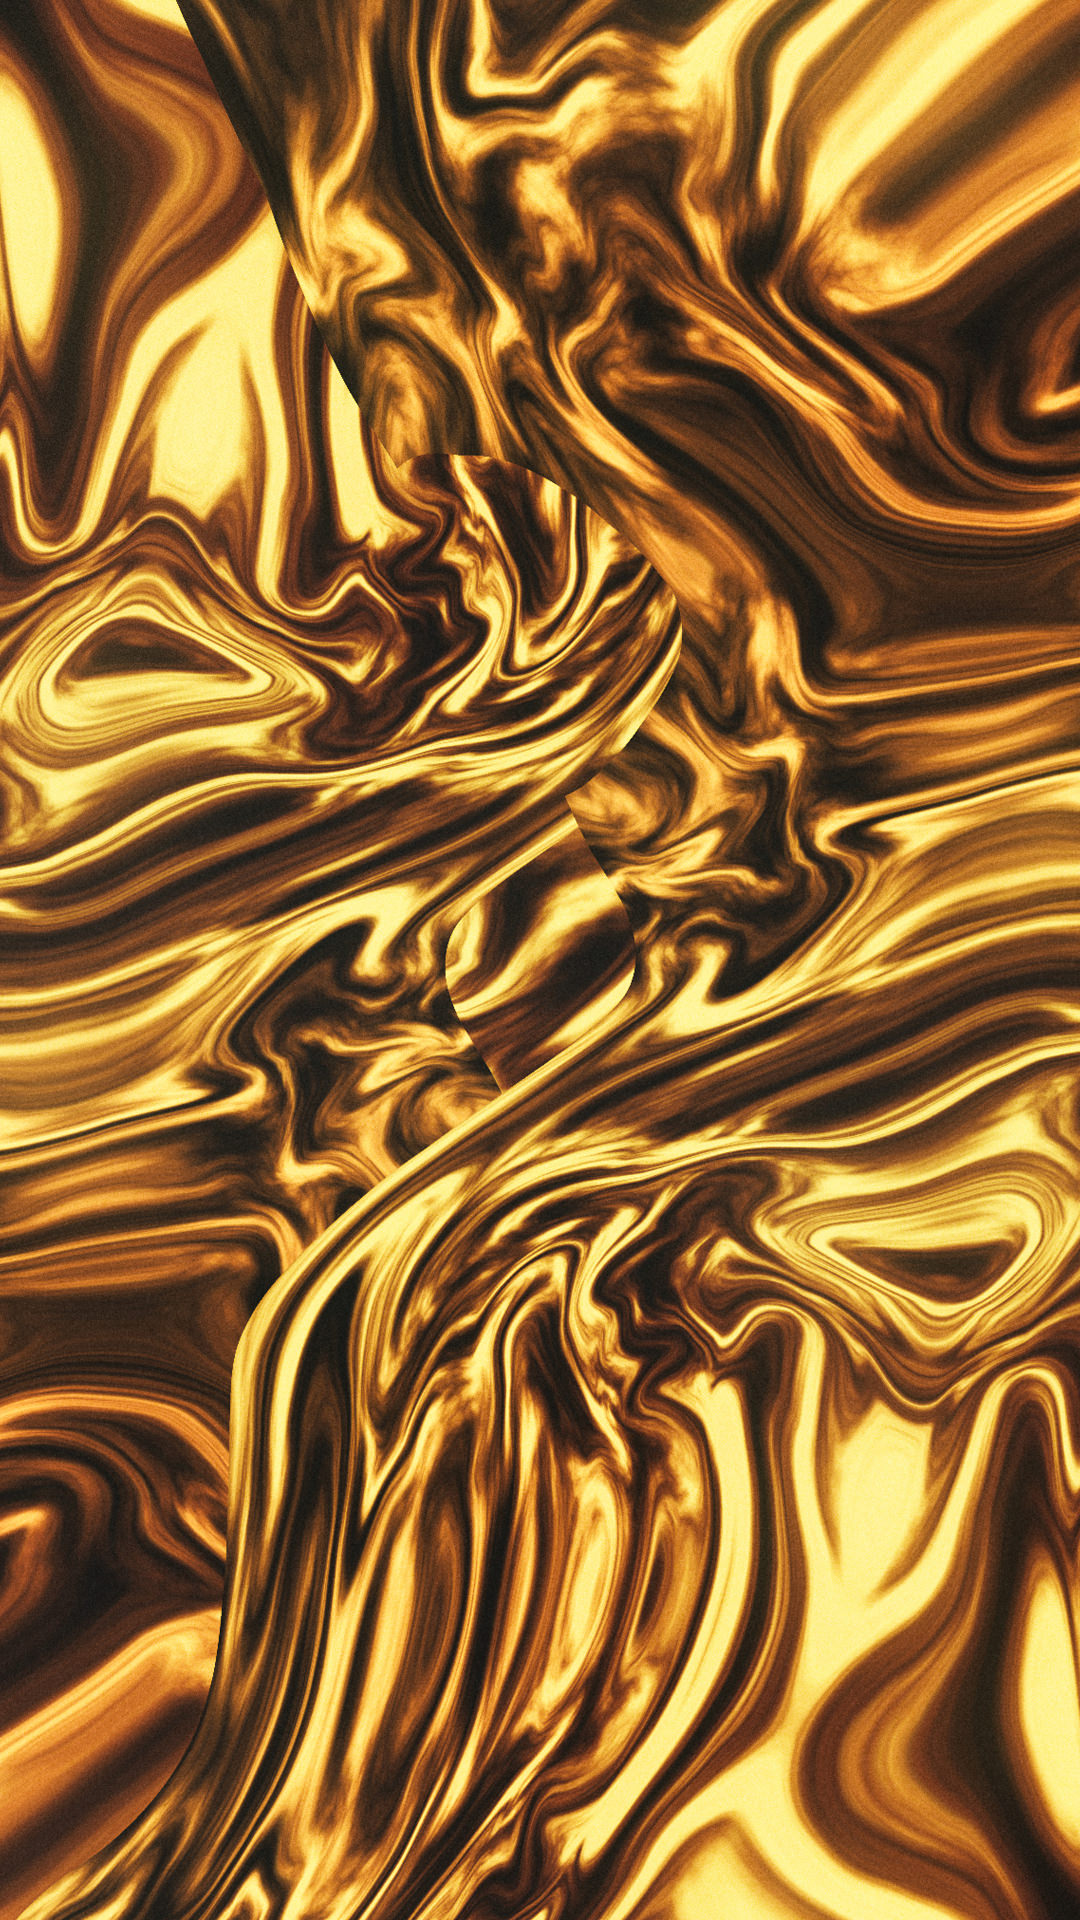 Herm-the-Younger-Phone-Wallpaper-Liquid-Gold